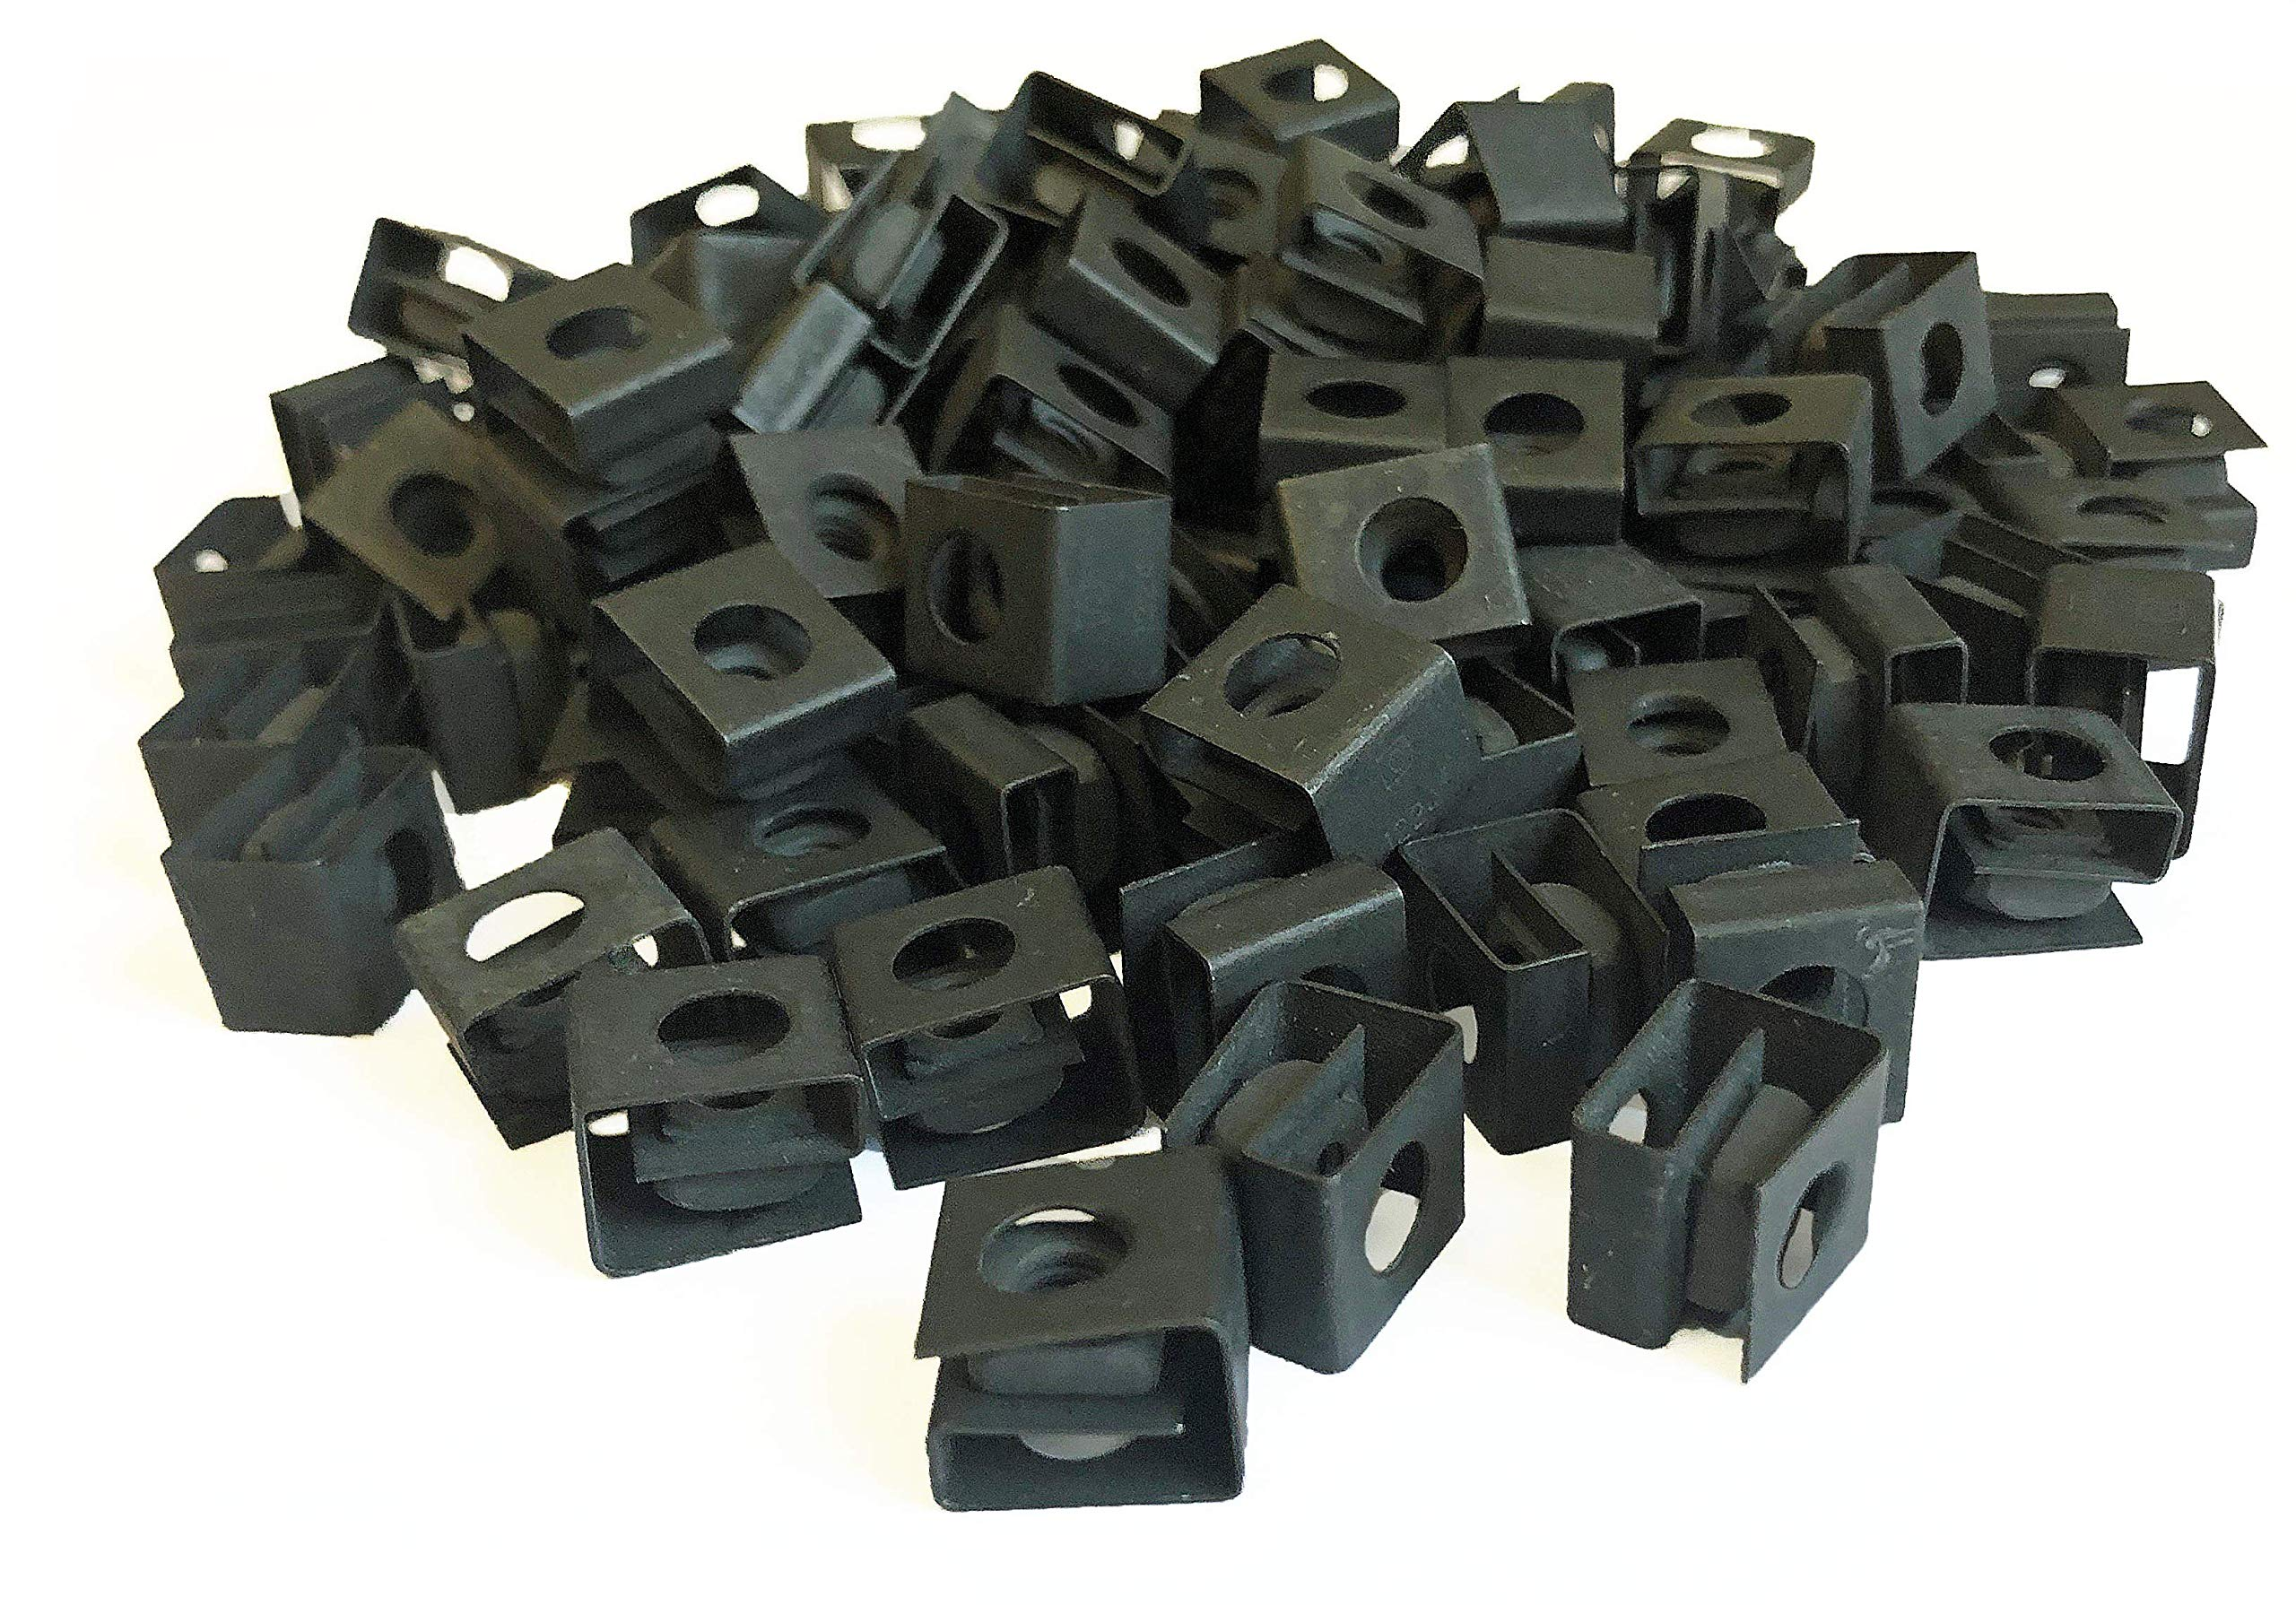 RackGold Black 12-24 Slide-on Cage Nuts 100 Pack - USA Made by RackGold